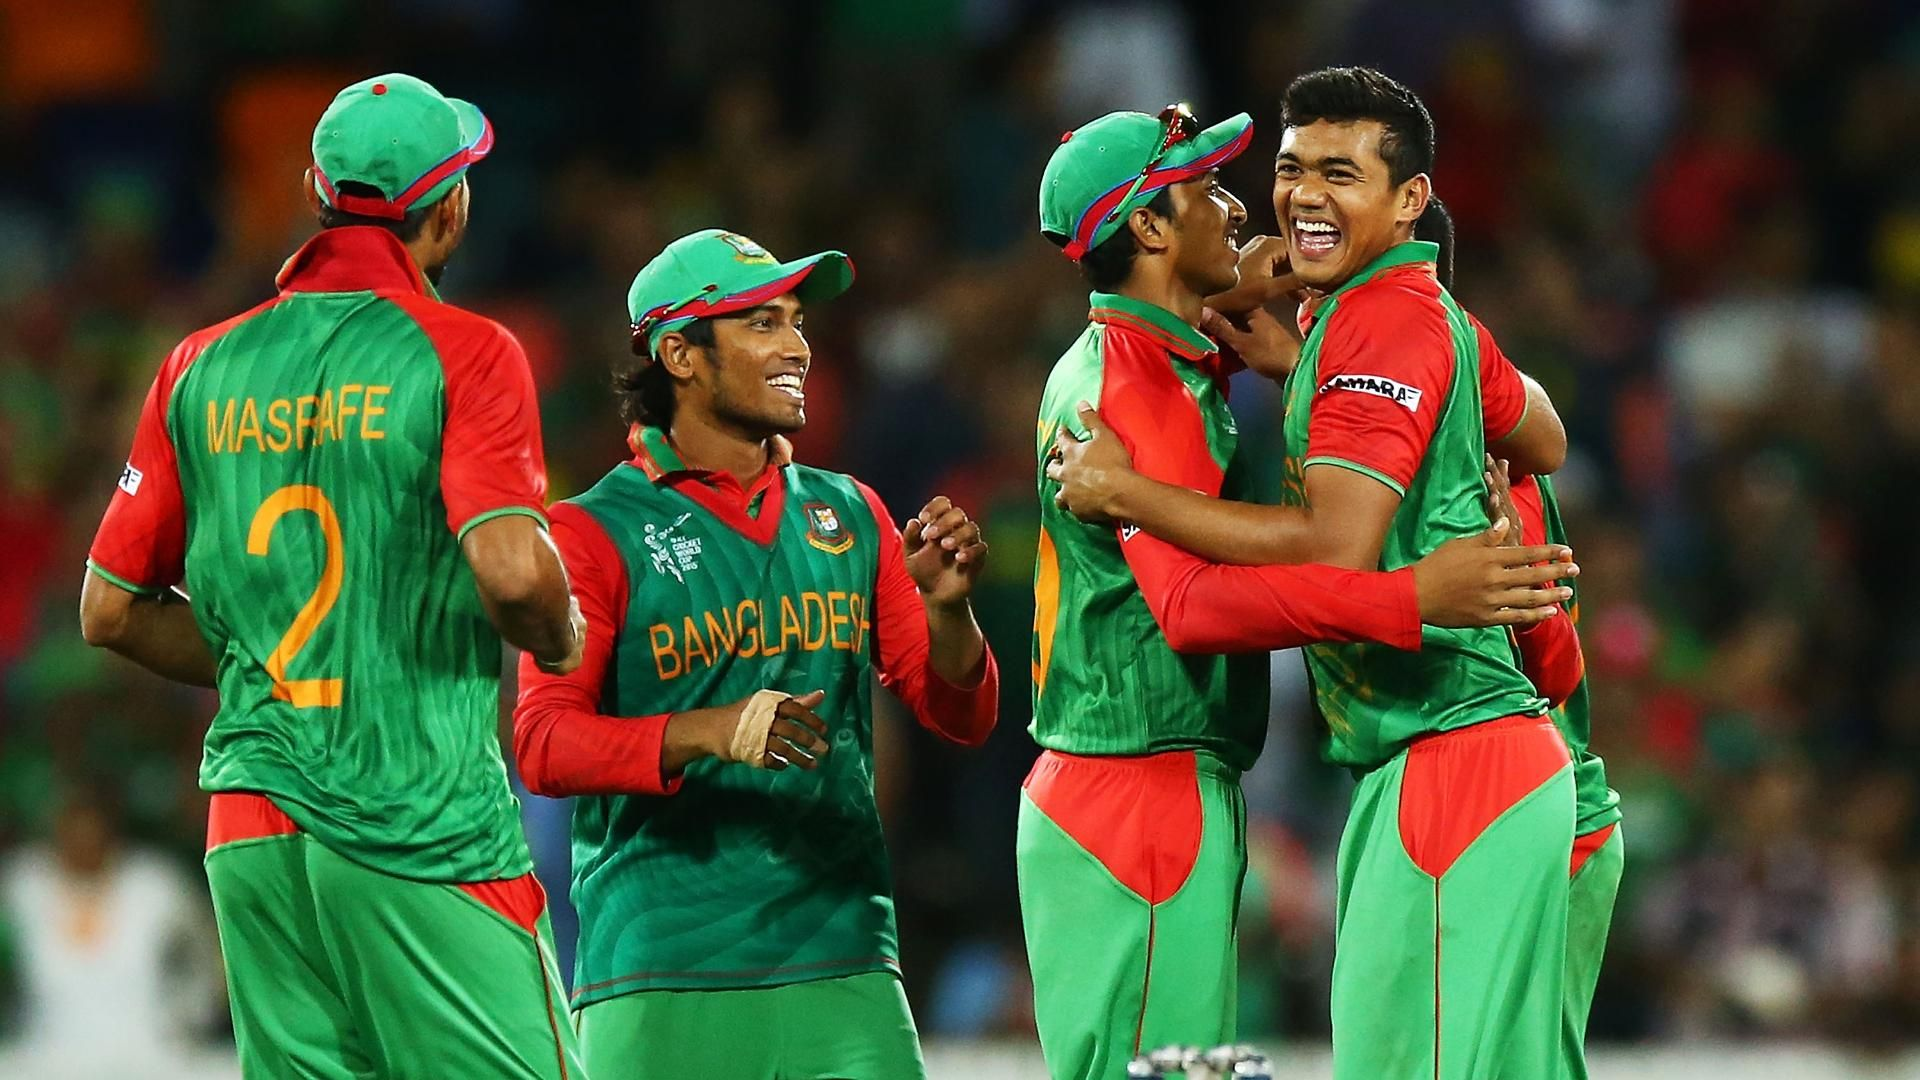 Match Point : Bangladesh v Scotland, World Cup 2015, Group A